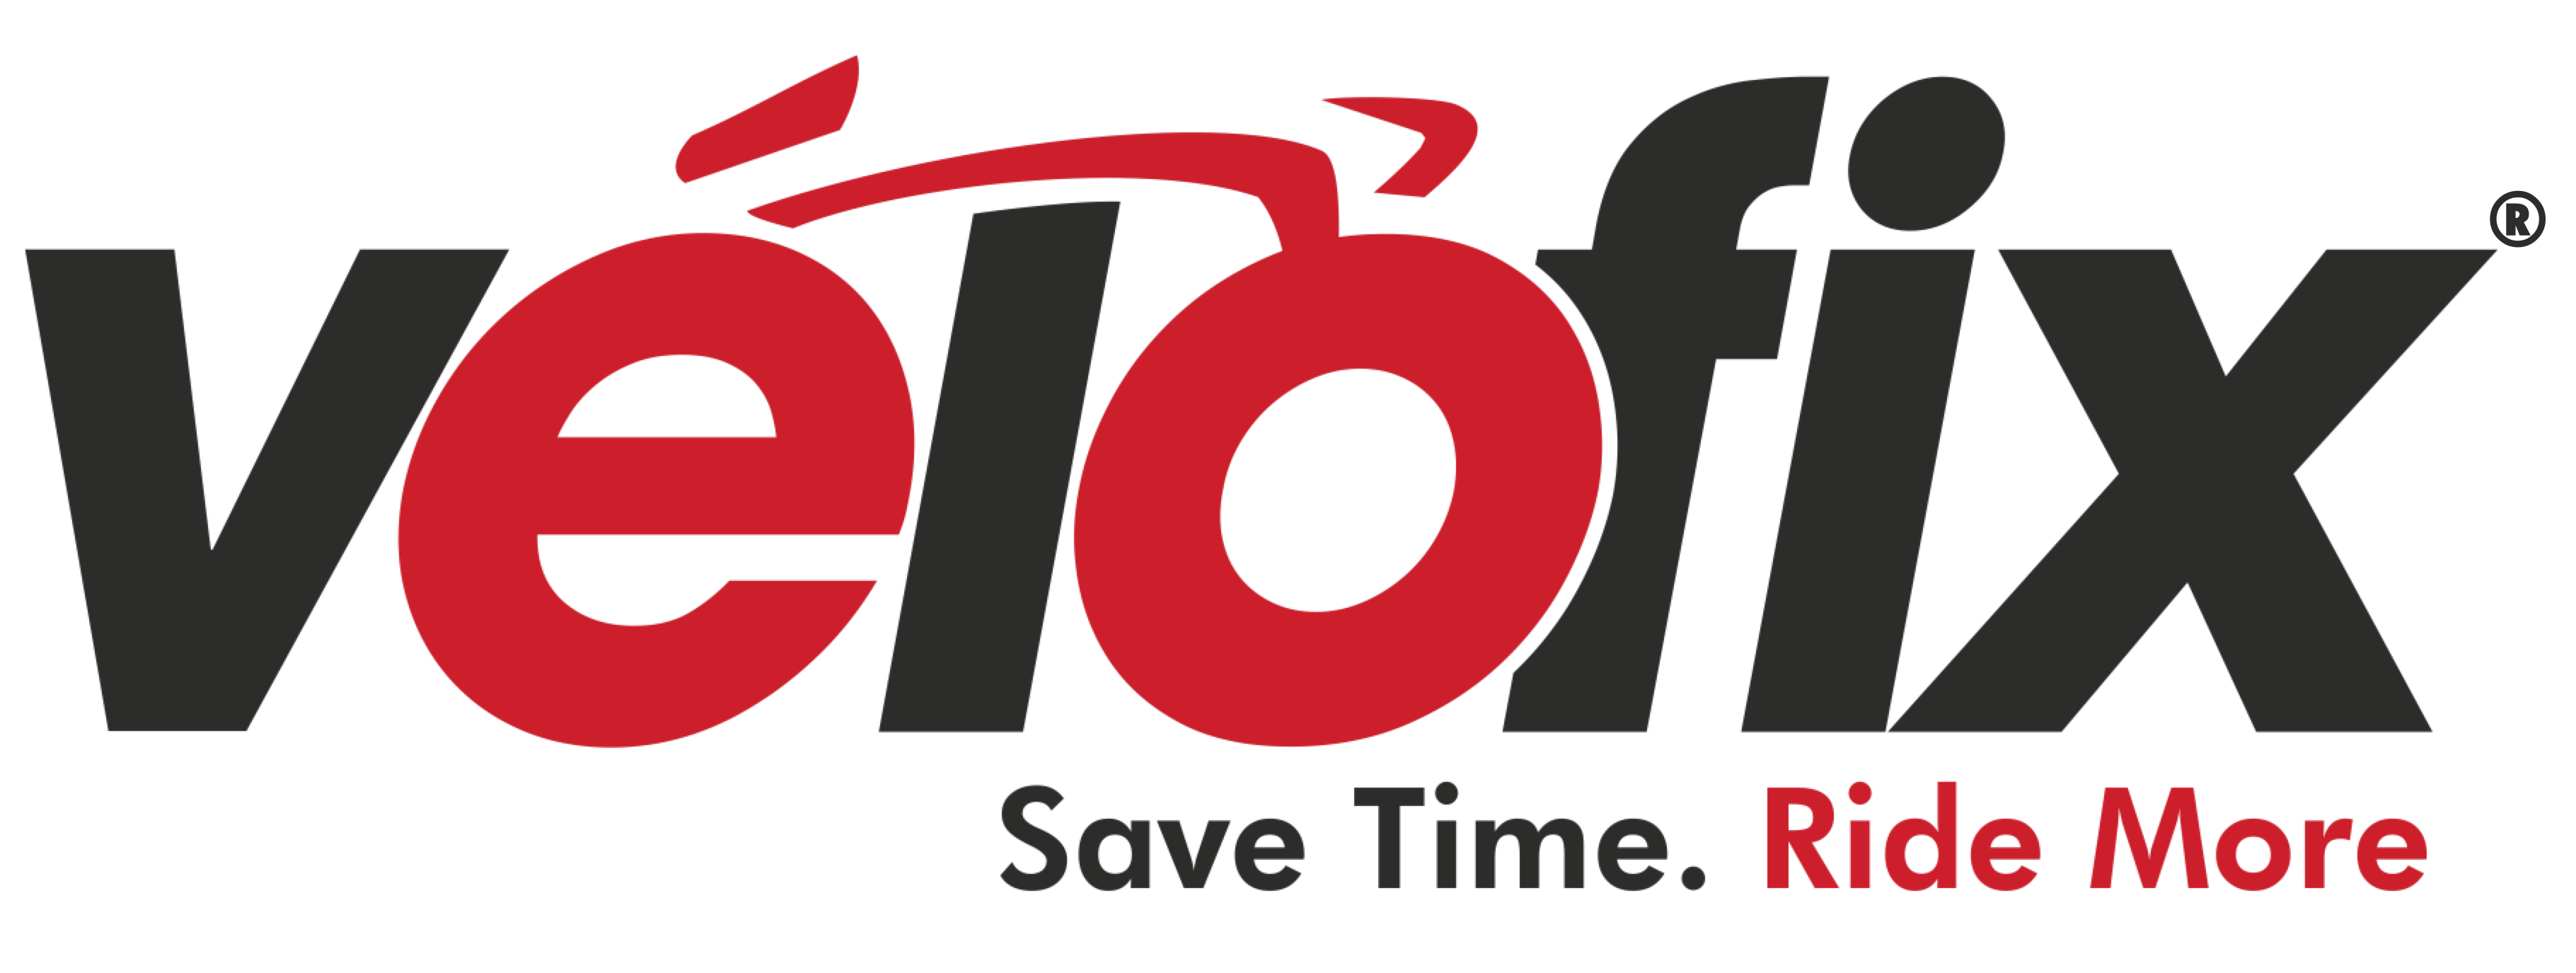 024 DD Velofix TradeMarked Logo_Original copy.jpg